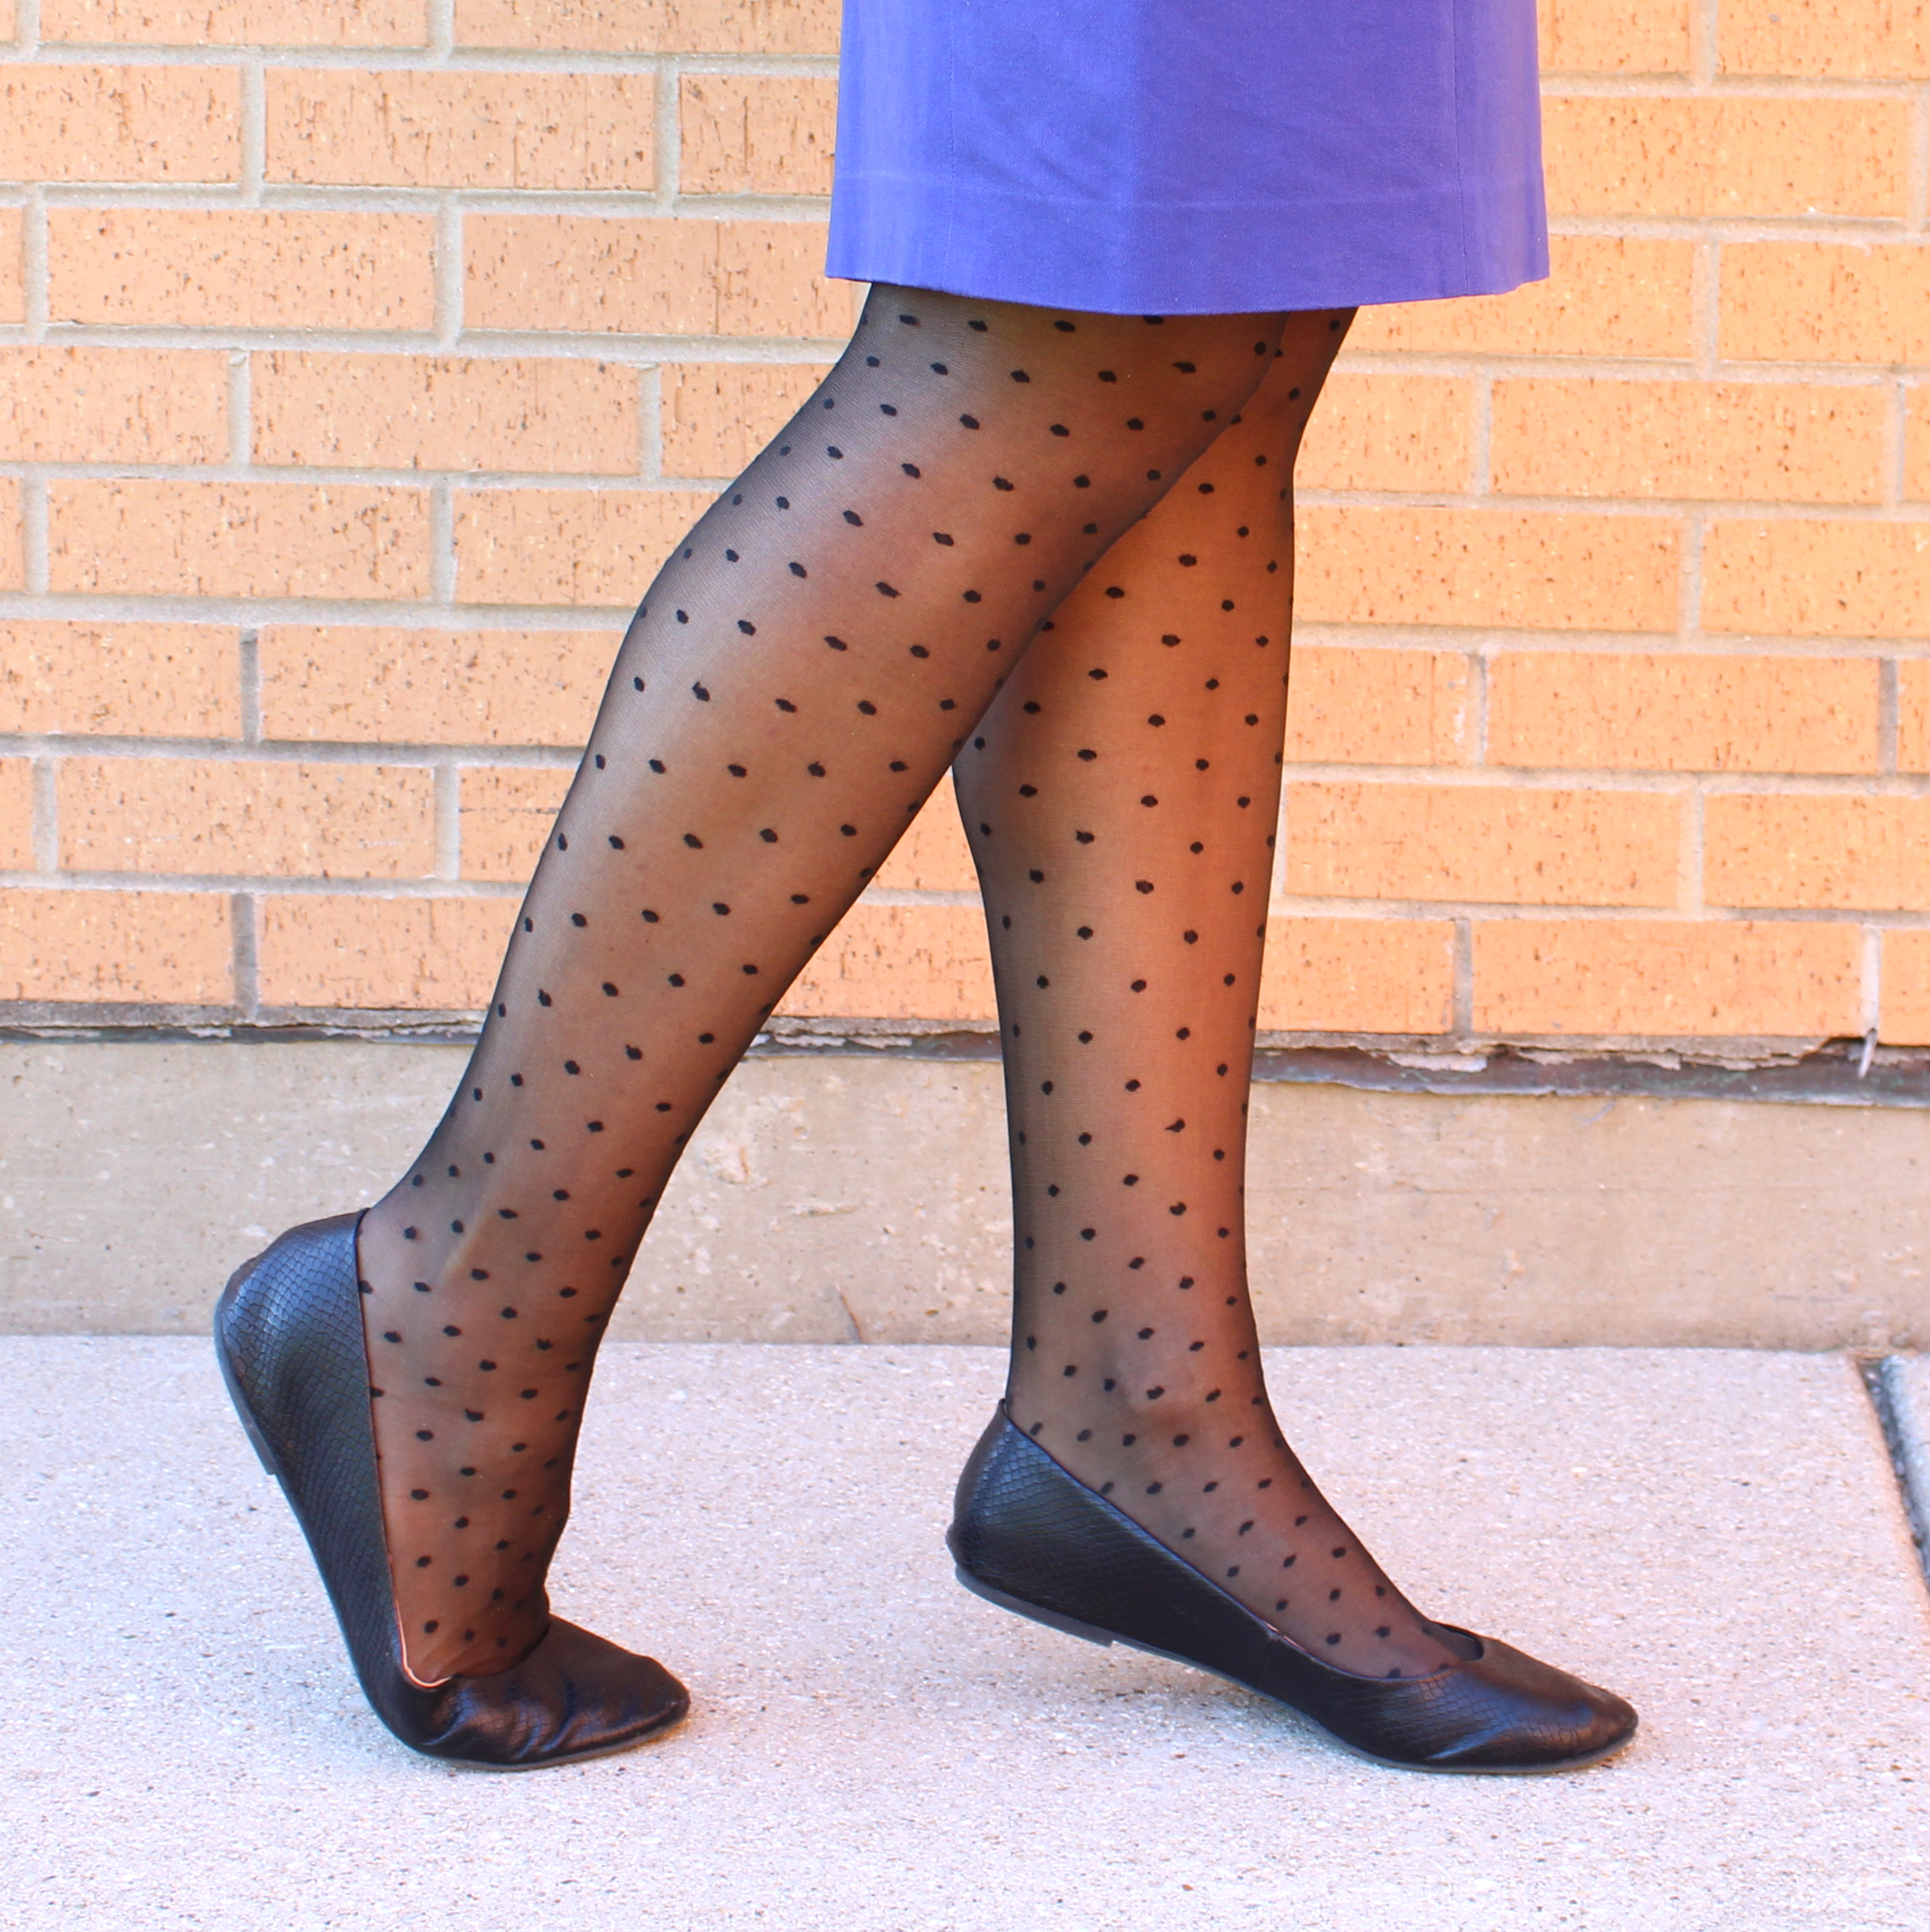 Women's Polka-Dot Pantyhose It's time to ditch your basic opaque tights and go for something a little more fun - polka-dot pantyhose are the perfect way to update your everyday looks. Team a sheer black pair with a leather mini skirt to channel this season's rock and roll vibe, or layer them under ripped jeans when the temperature drops.